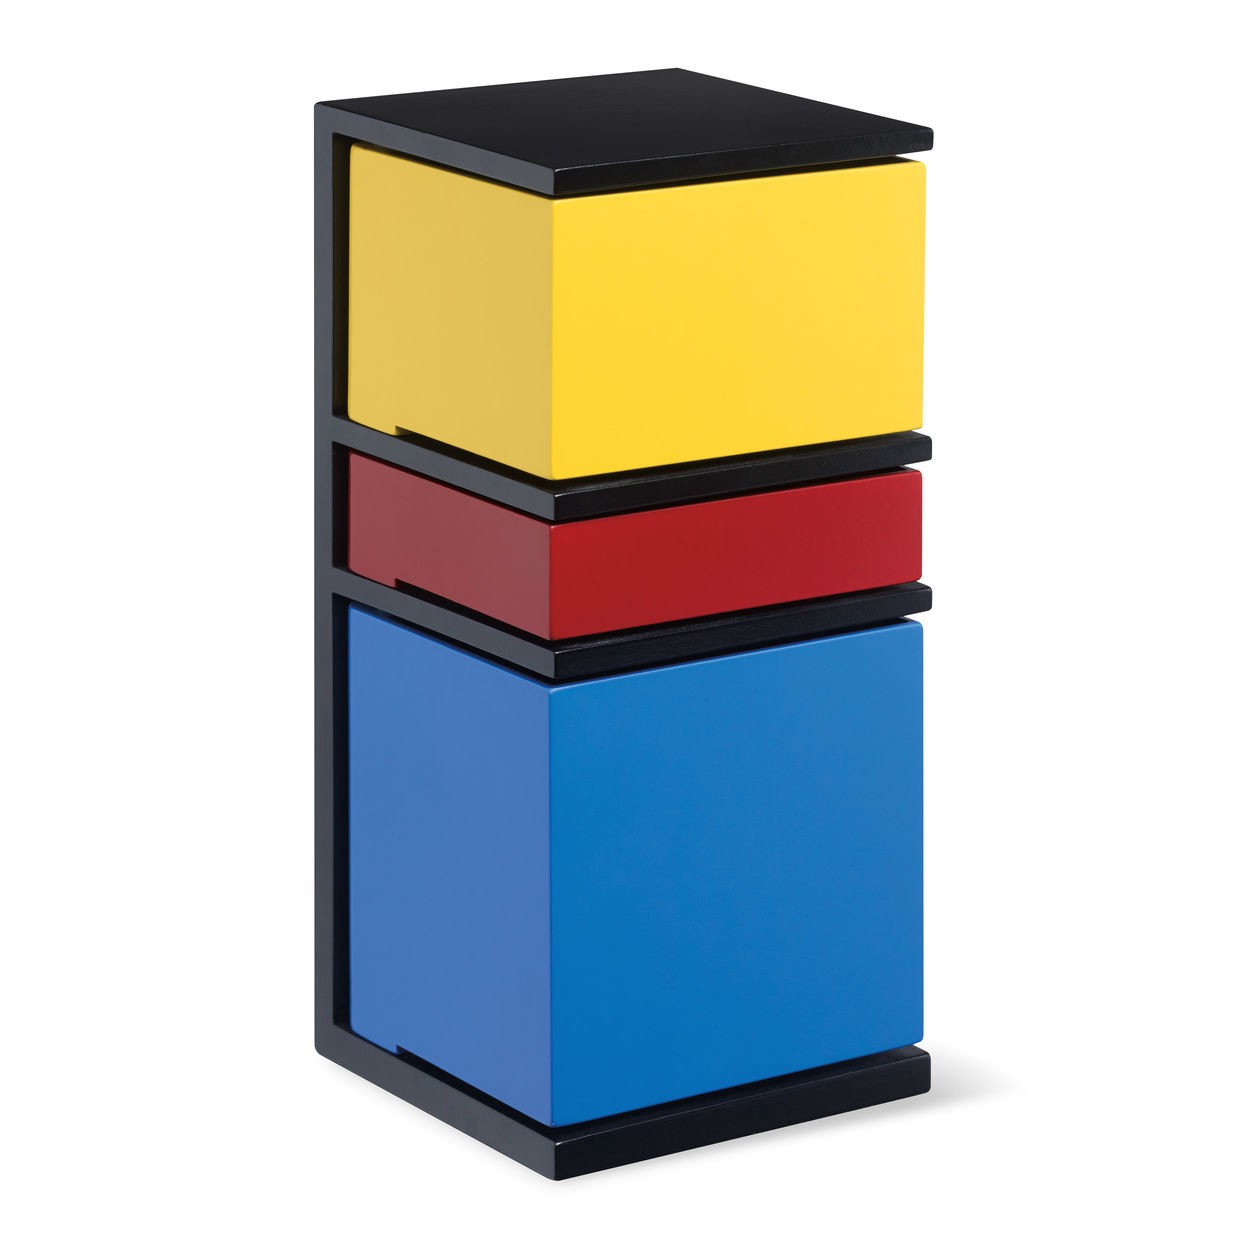 De Stijl Storage Tower From The Moma Design Source Goo Gl W31hpy